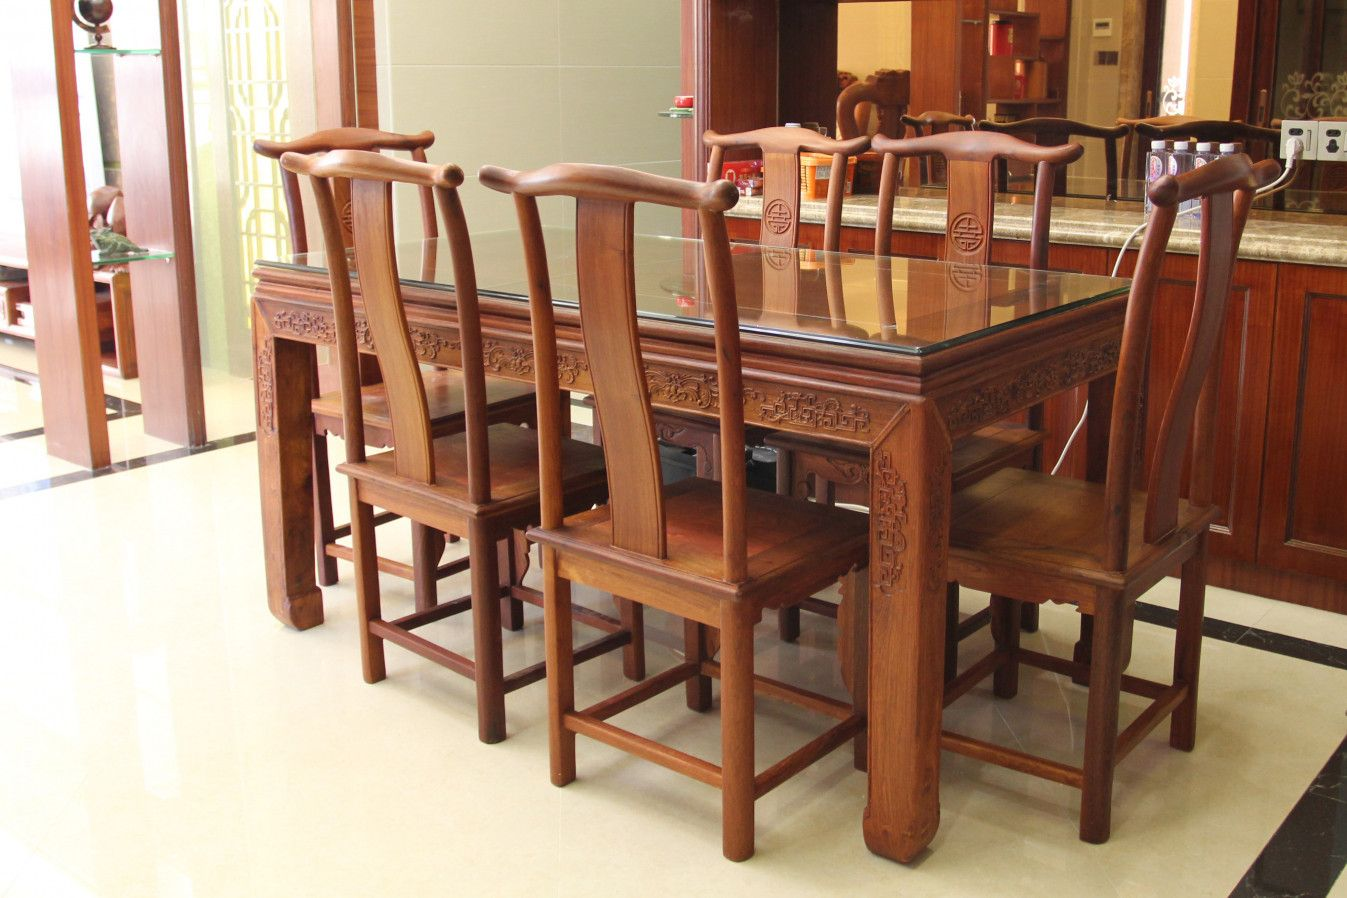 2019 Oriental Dining Chairs   Vintage Modern Furniture Check More At  Http://www